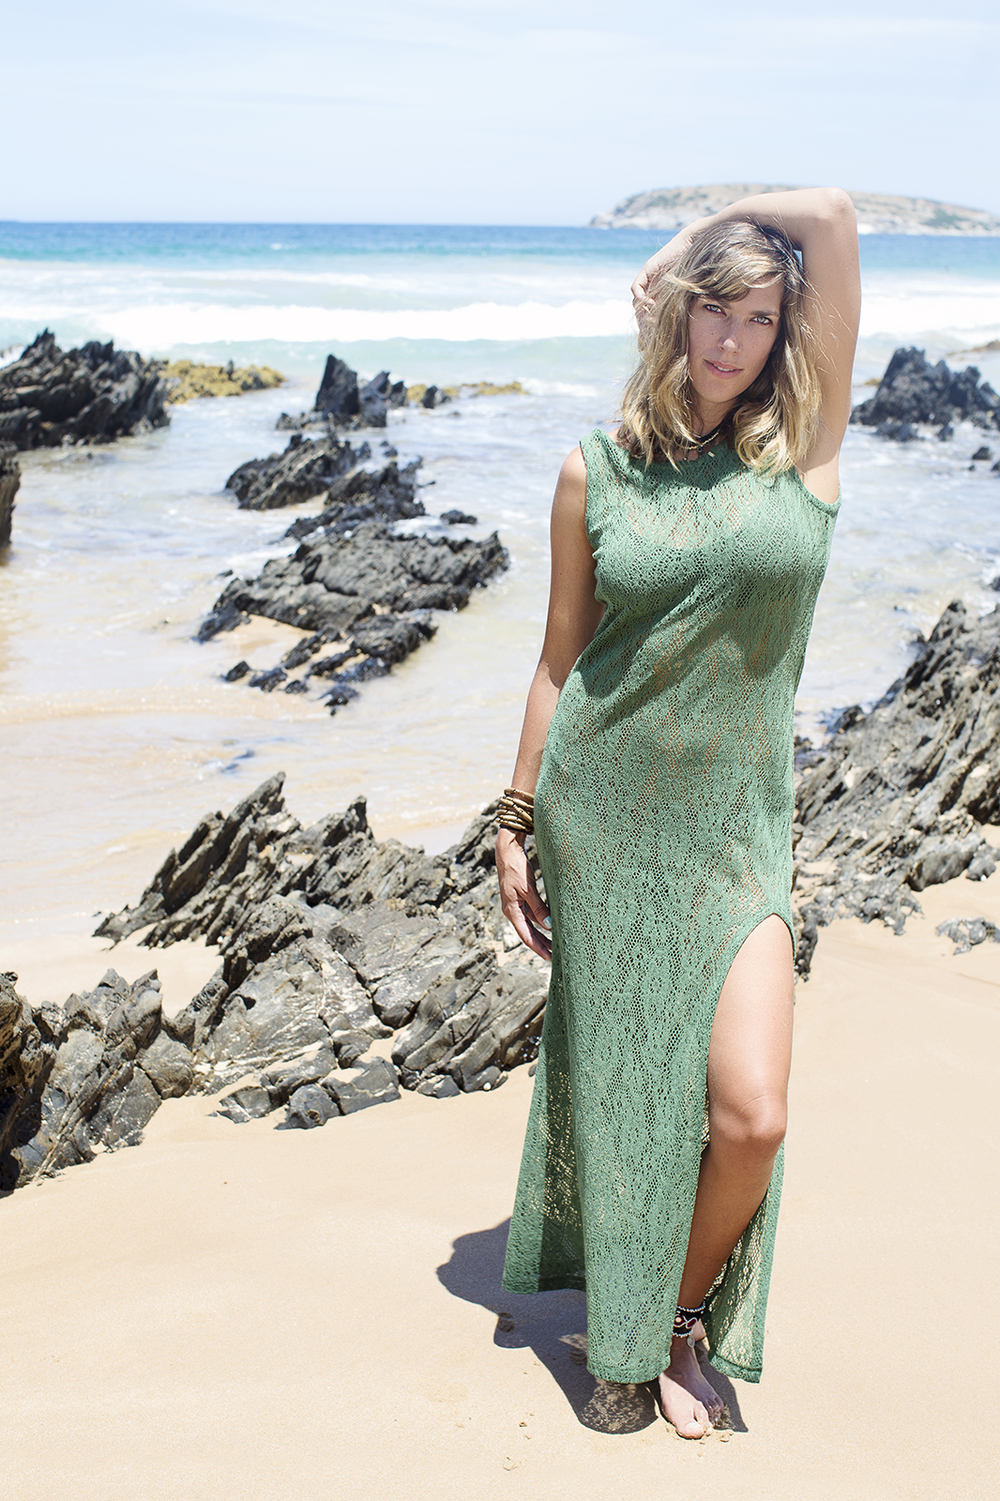 Natural Arty Adelaide Beach Fashion Portrait Full Body.jpg